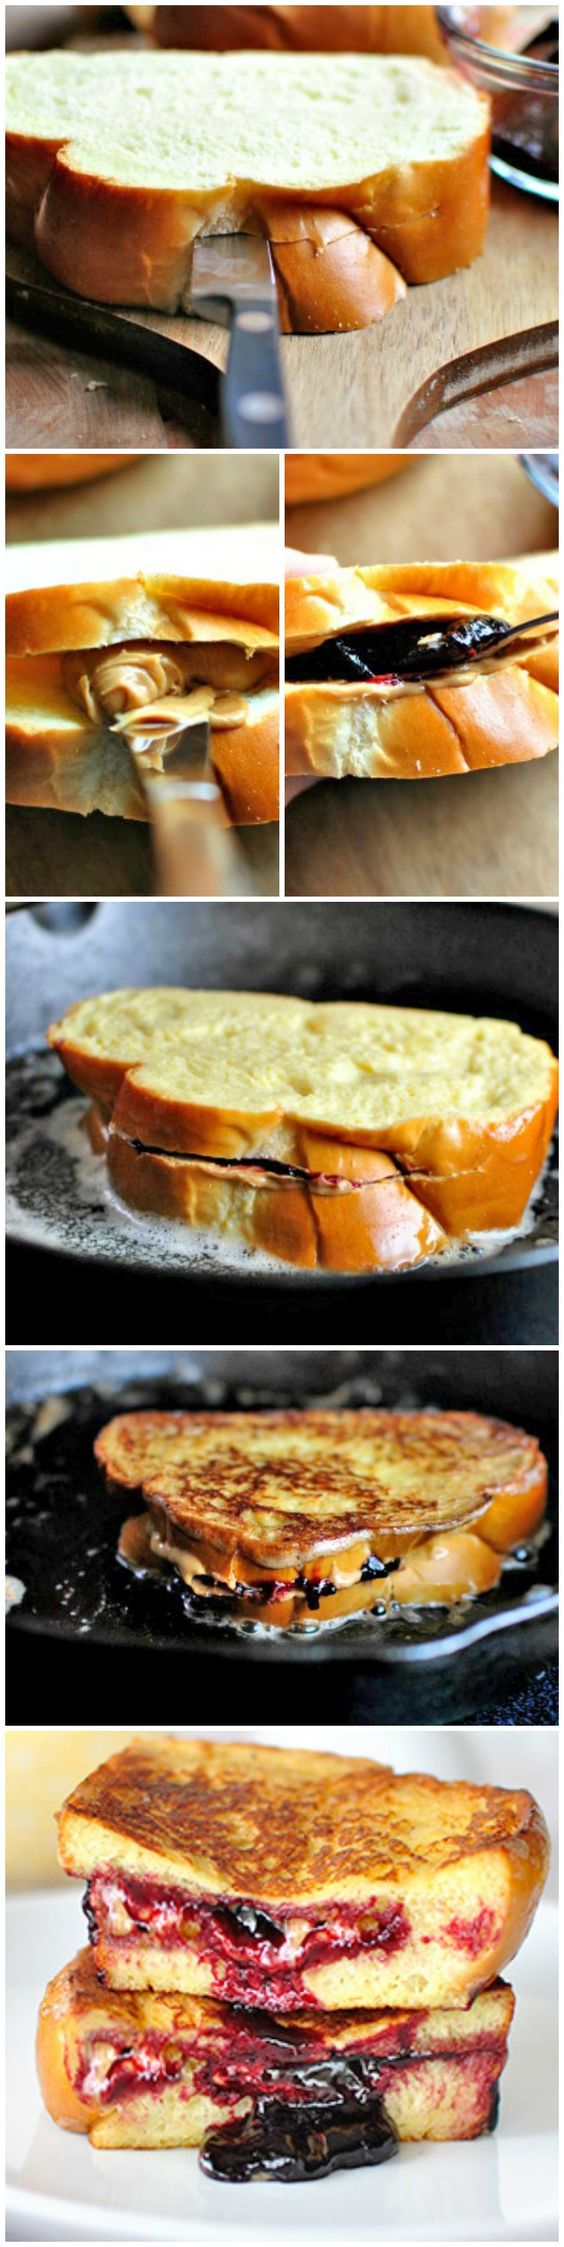 PB & J French Toast, a few of my favorite things at one time.  Maybe I'll make this on my birthday :)